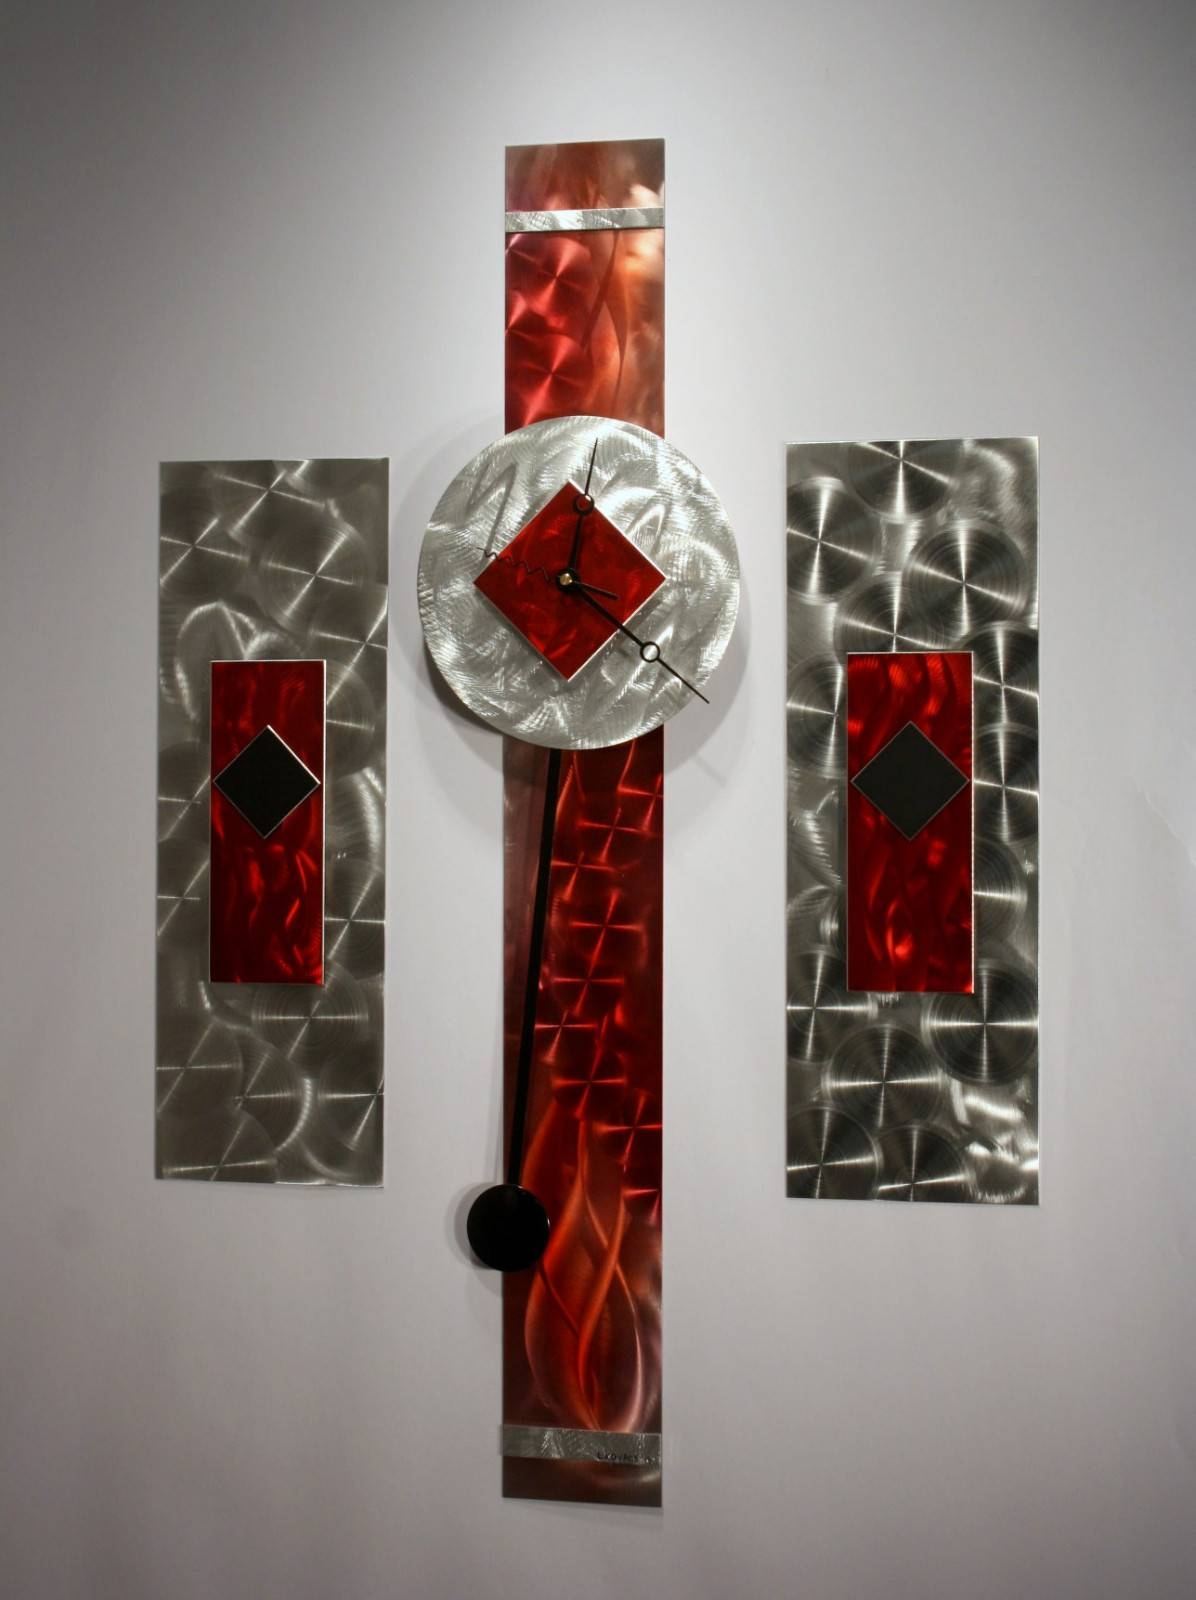 Wall Art: Collection Idea Metal Wall Art Sculptures Metal Wall Art In Most Recently Released Red And Black Metal Wall Art (View 17 of 20)